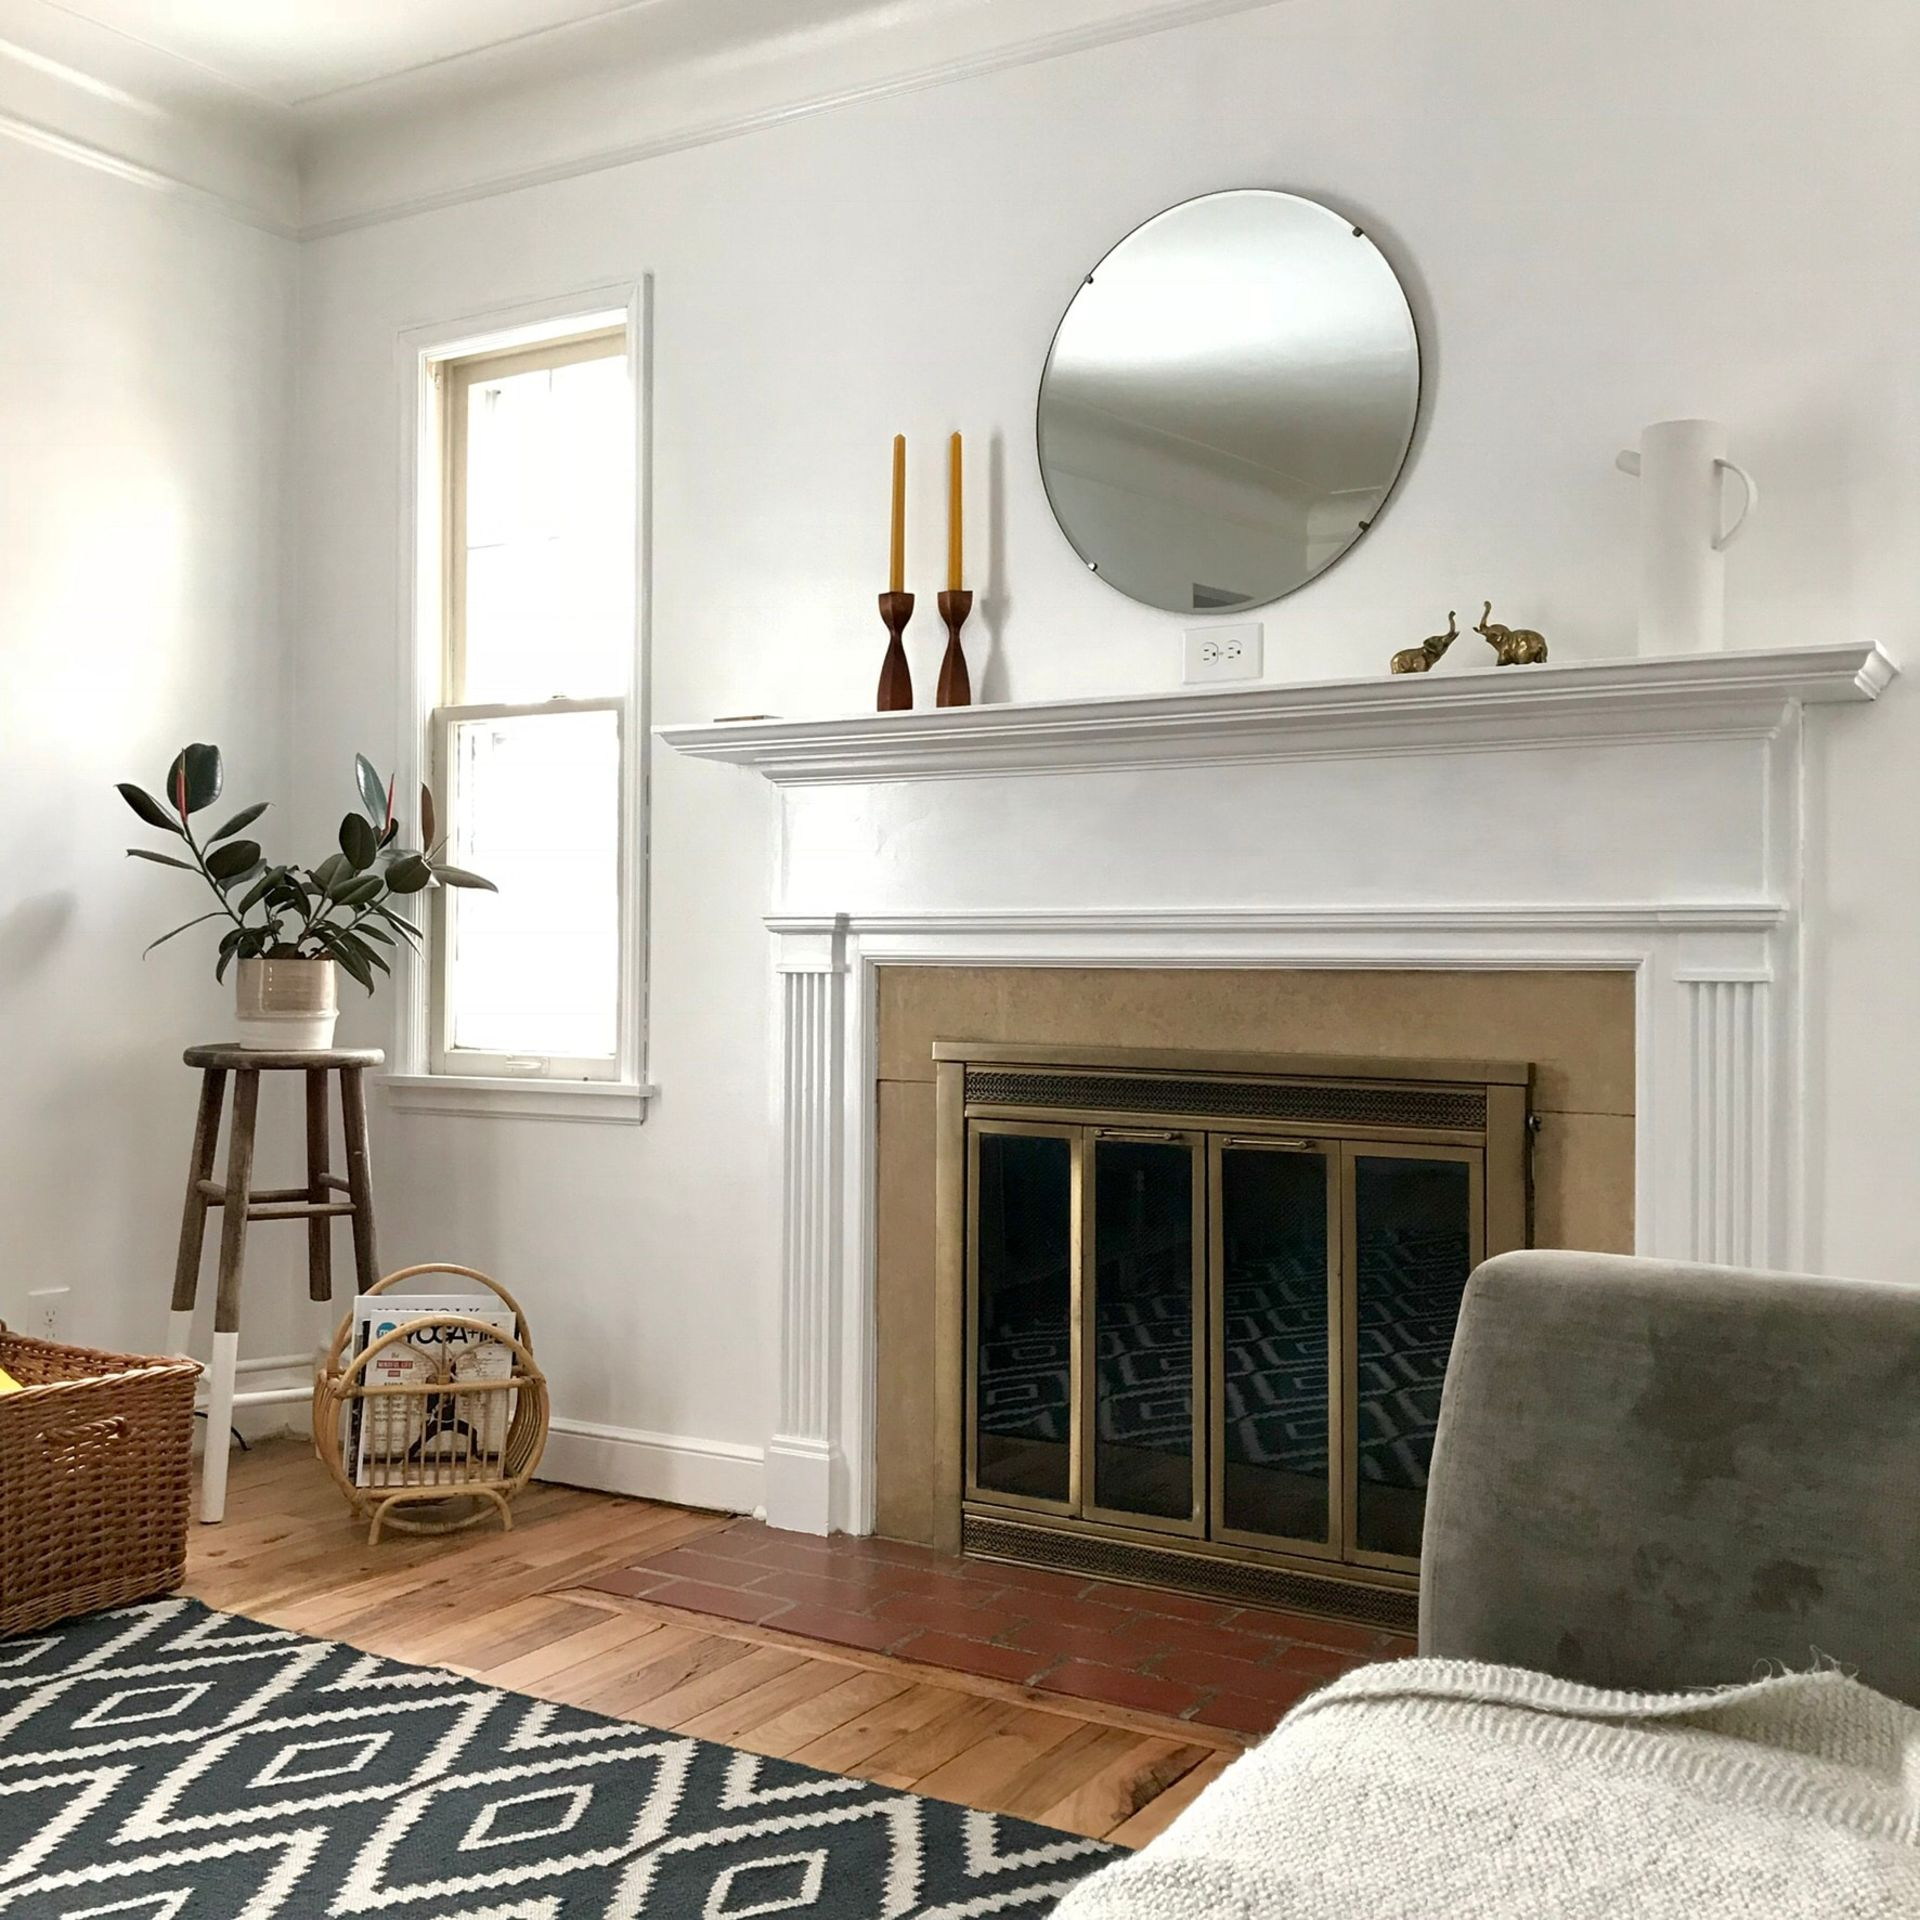 Easy Home Makeover in Under 10 Minutes